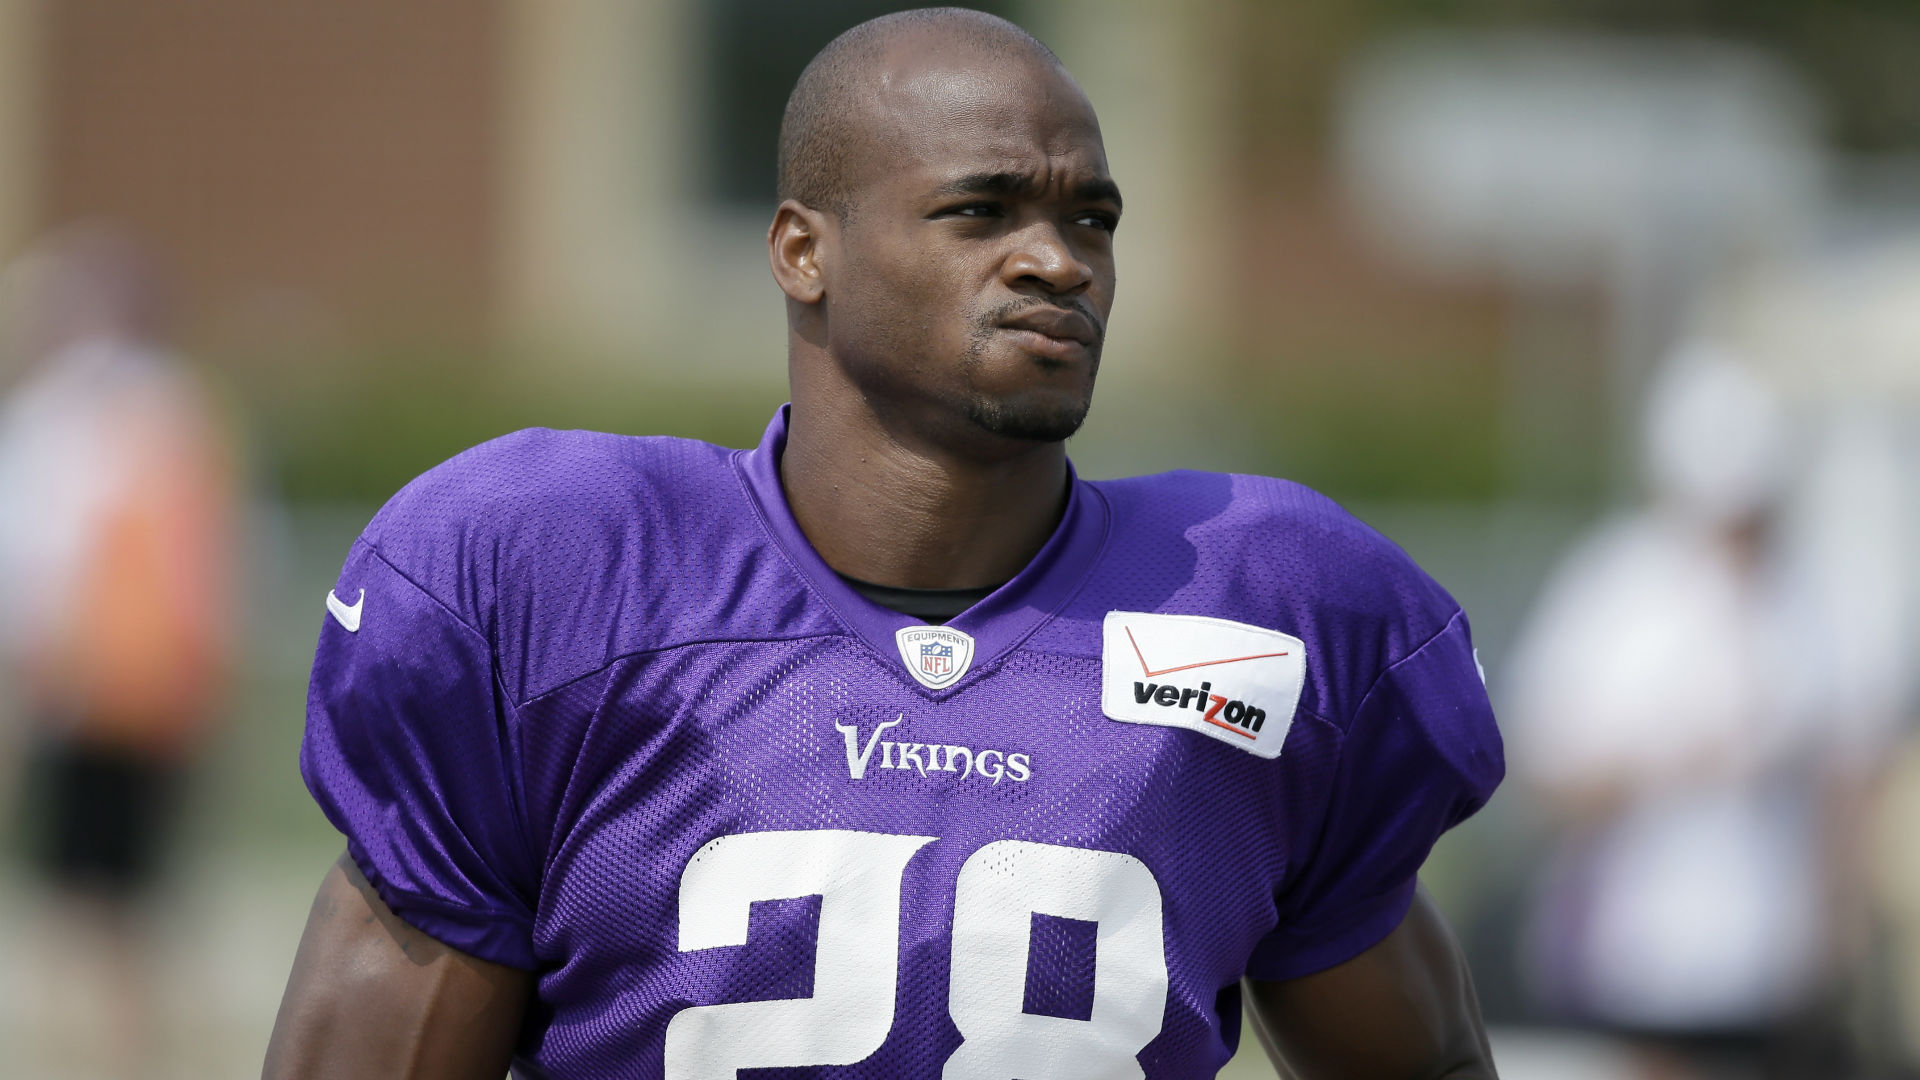 Adrian Peterson placed on exempt list, ordered to keep away from team